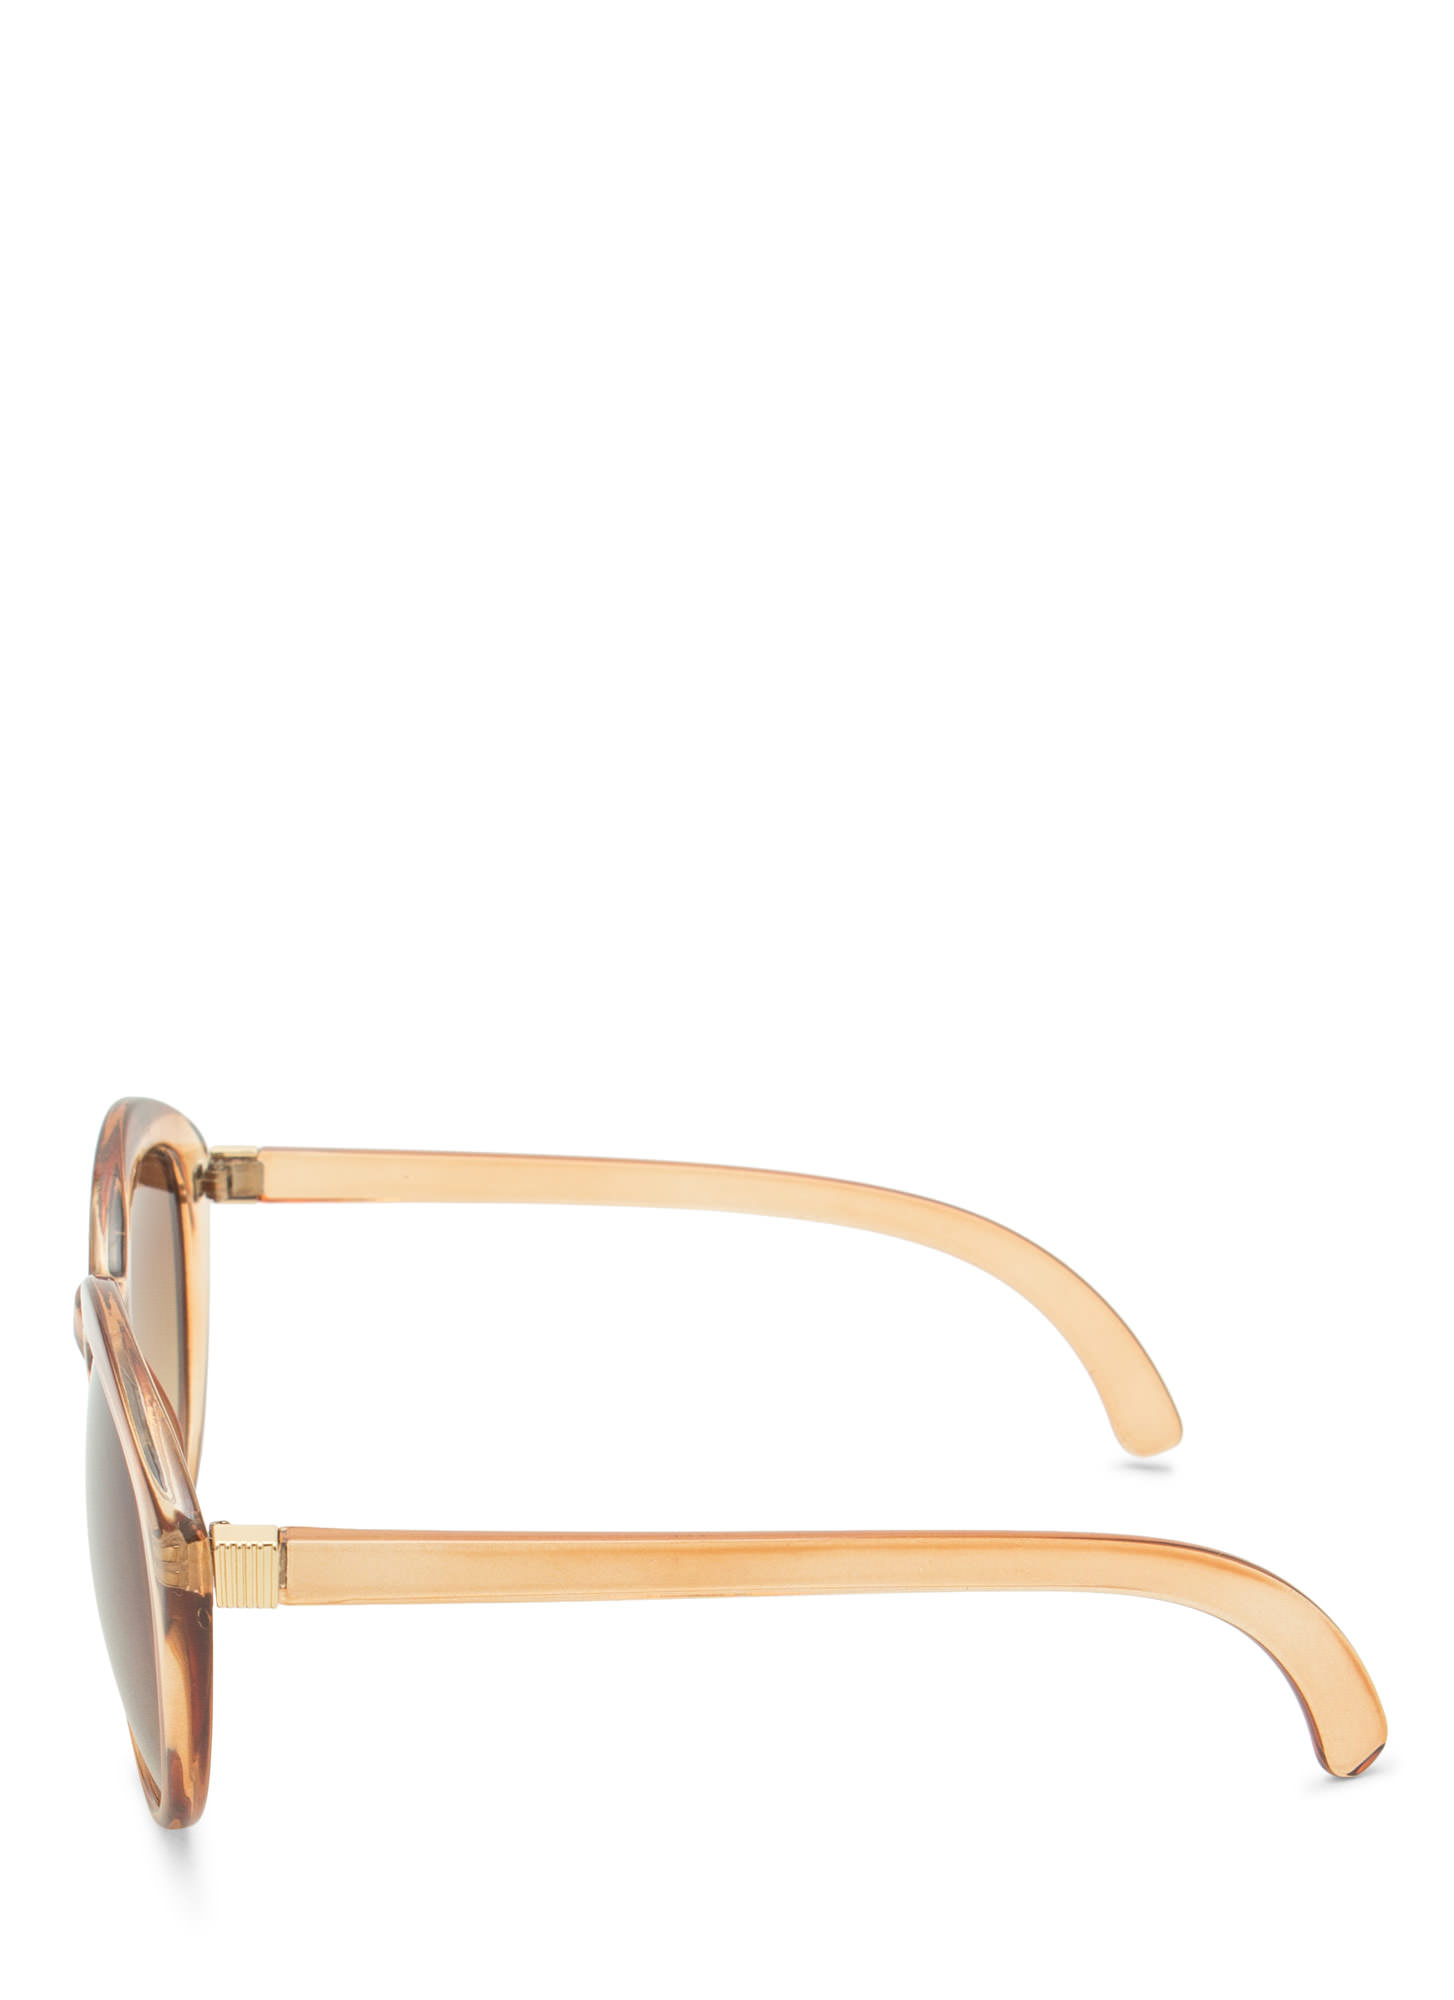 New Stuff: Top Heavy Flare Frame Sunglasses DRKBROWN